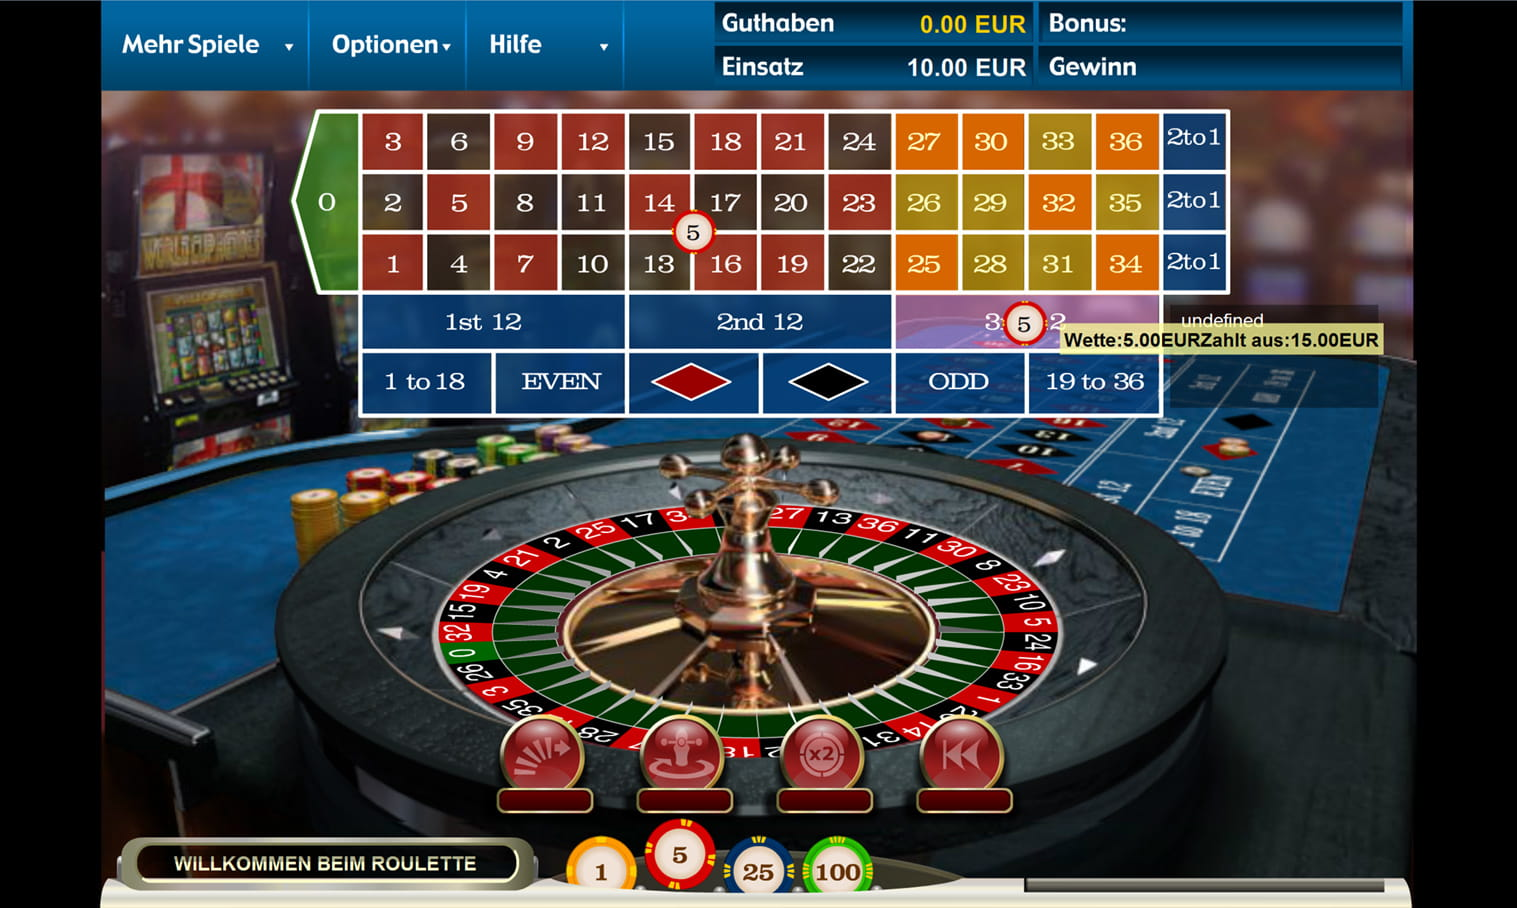 william hill online casino erfahrungen